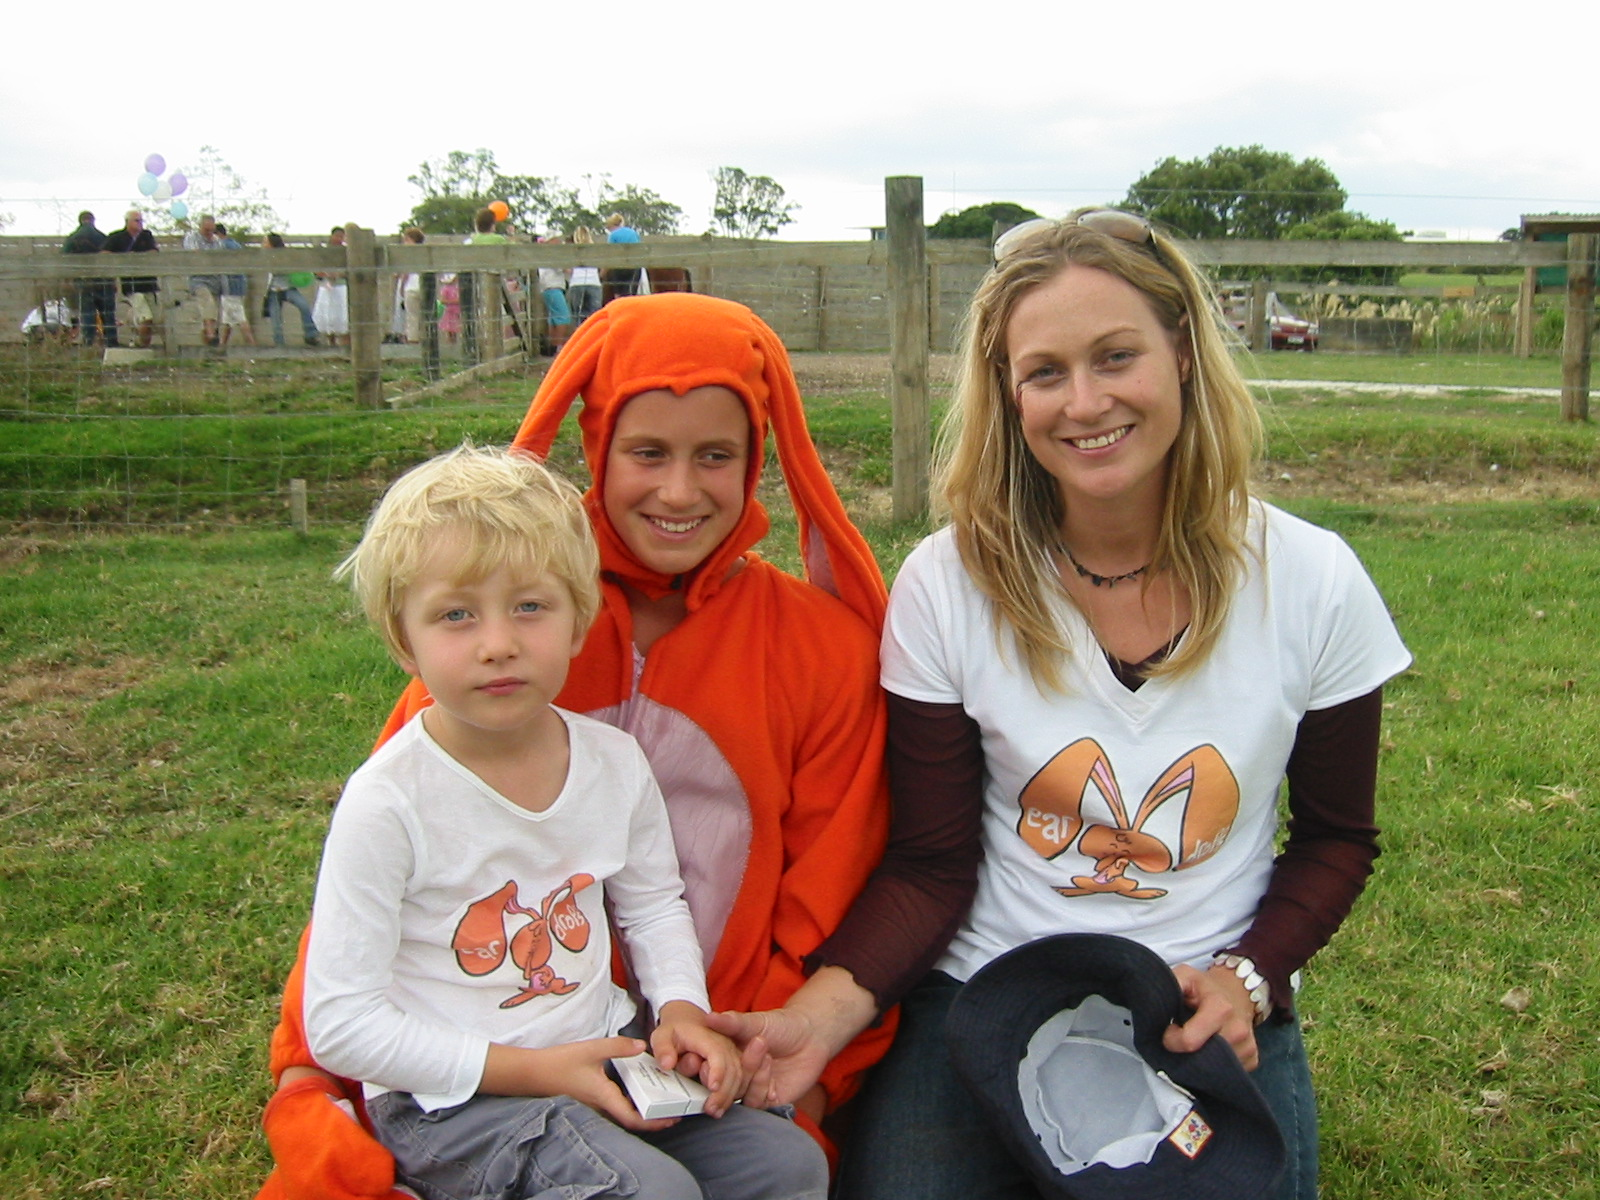 Liz Donnelly and young son with Eardrop rabbit character